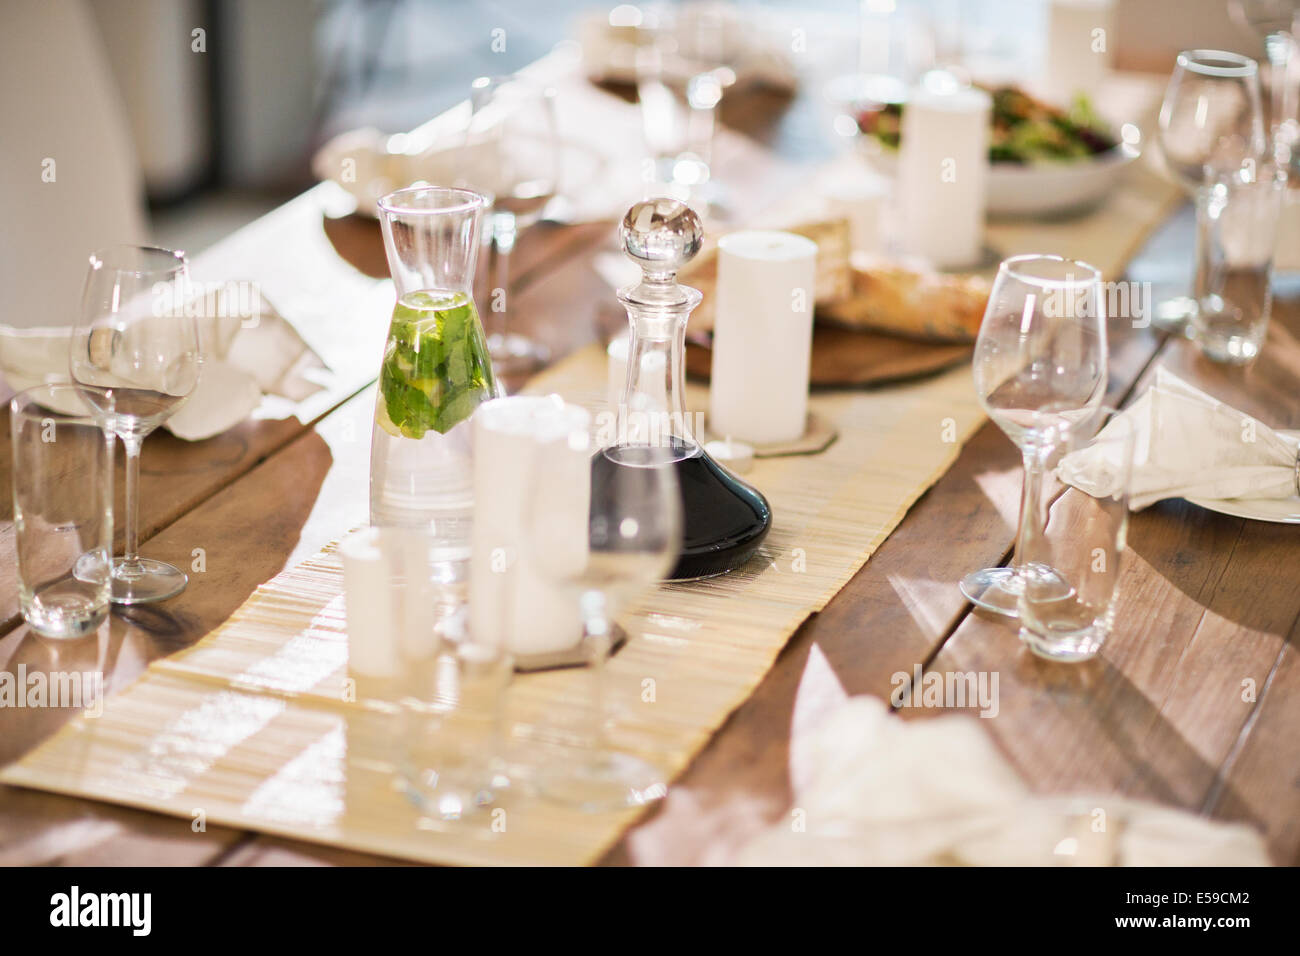 Set table at dinner party Photo Stock